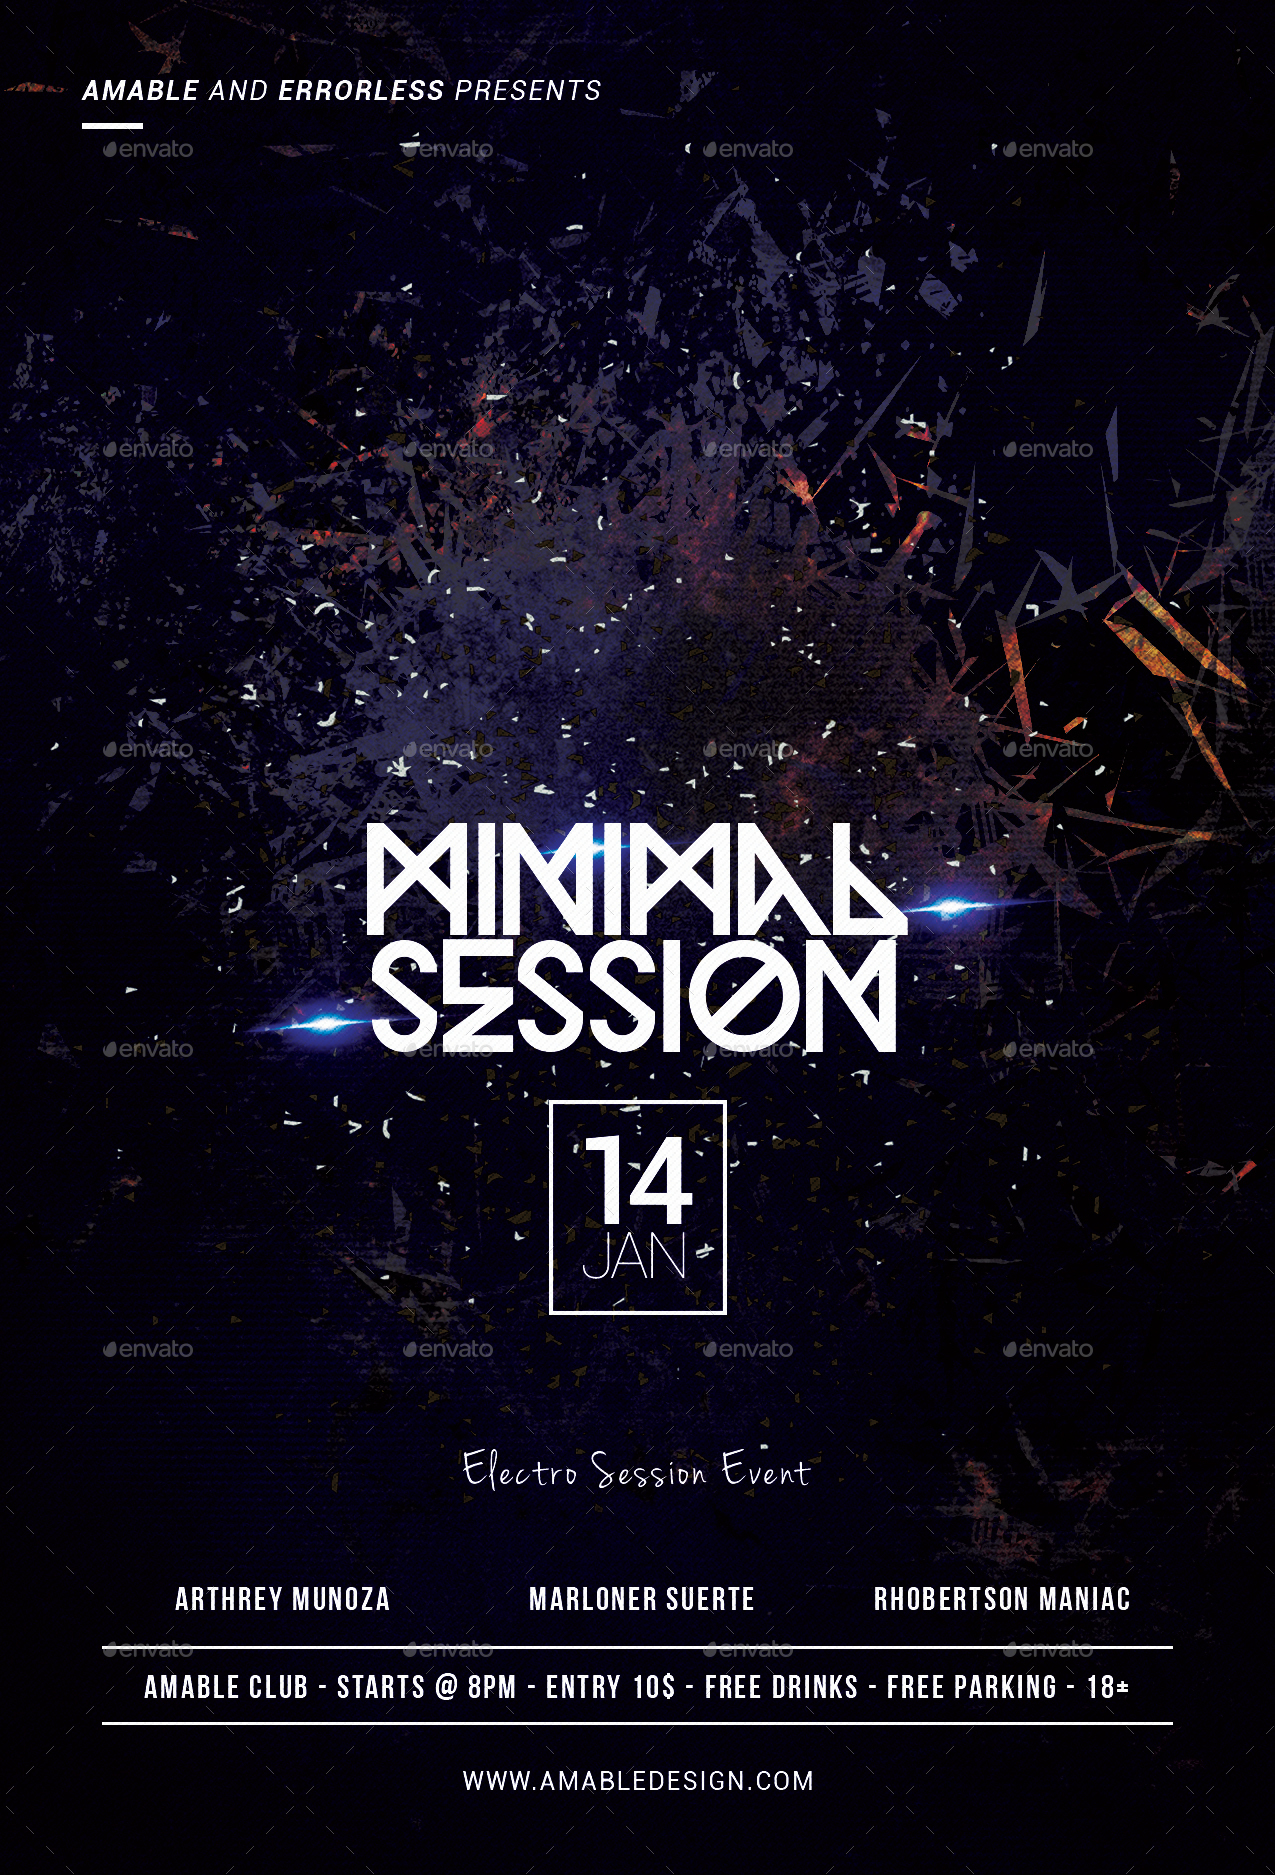 Minimal Session Flyer